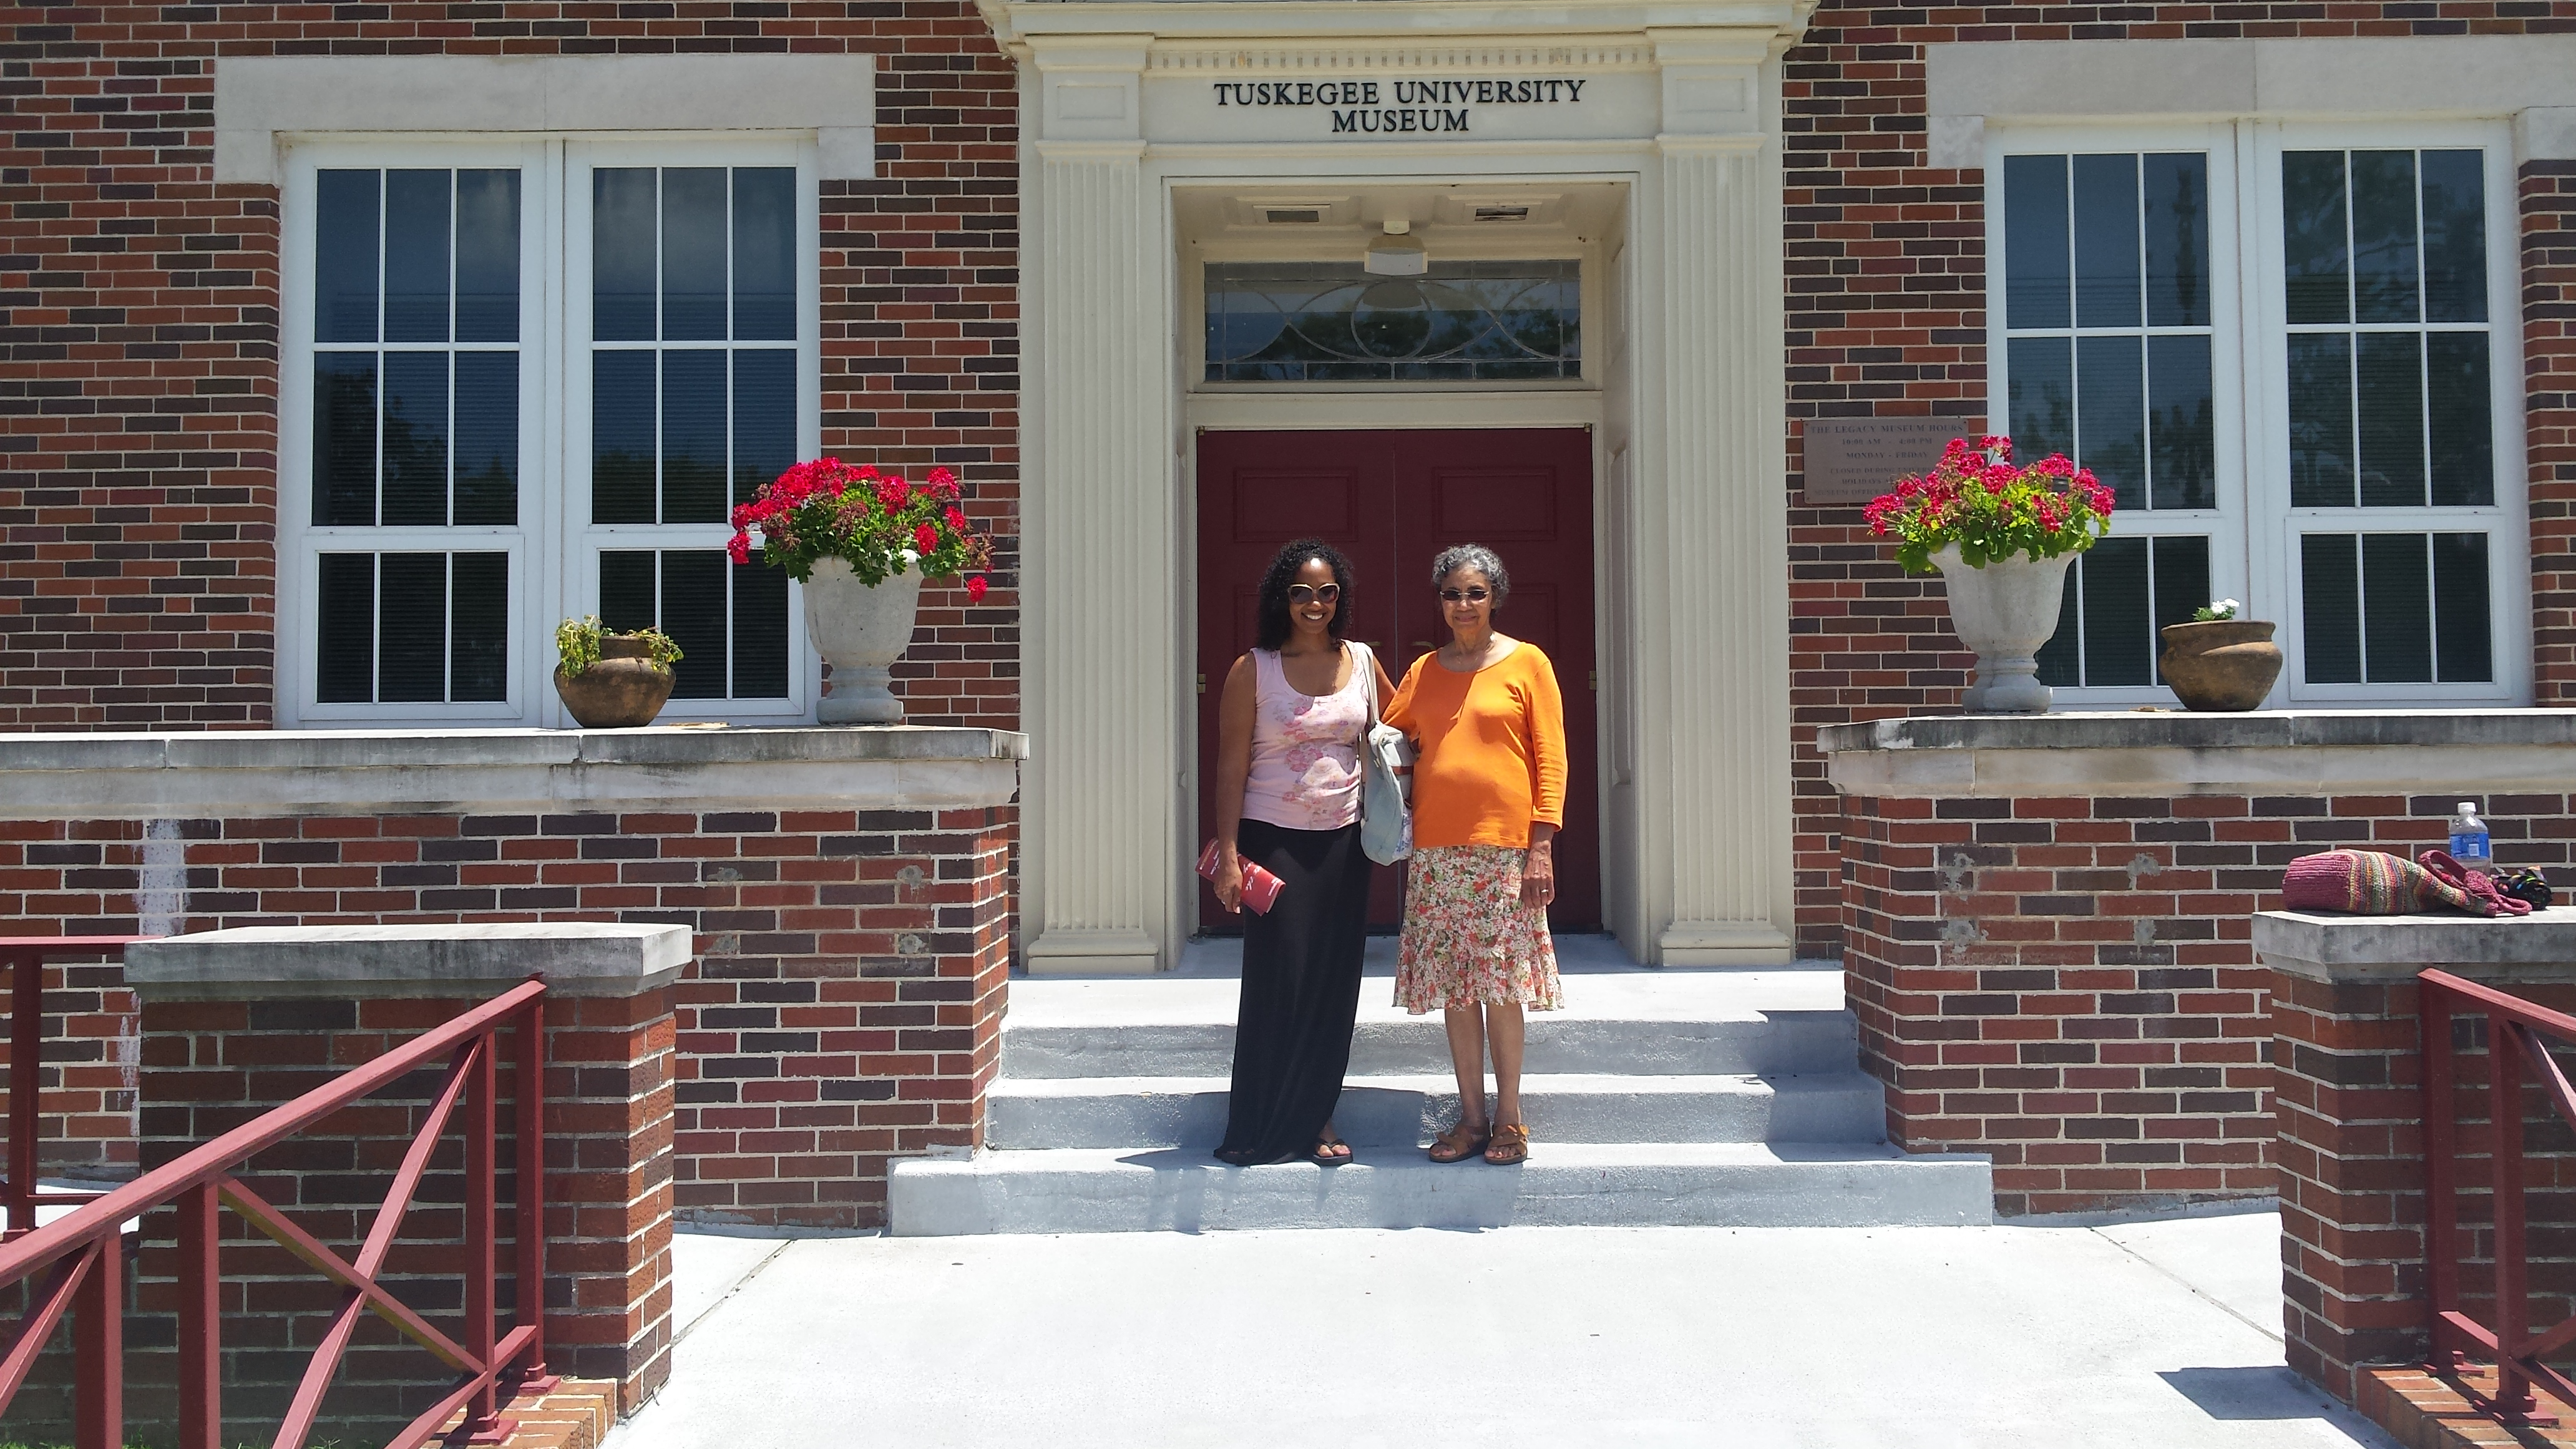 The Legacy Museum At Tuskegee University Our Museums